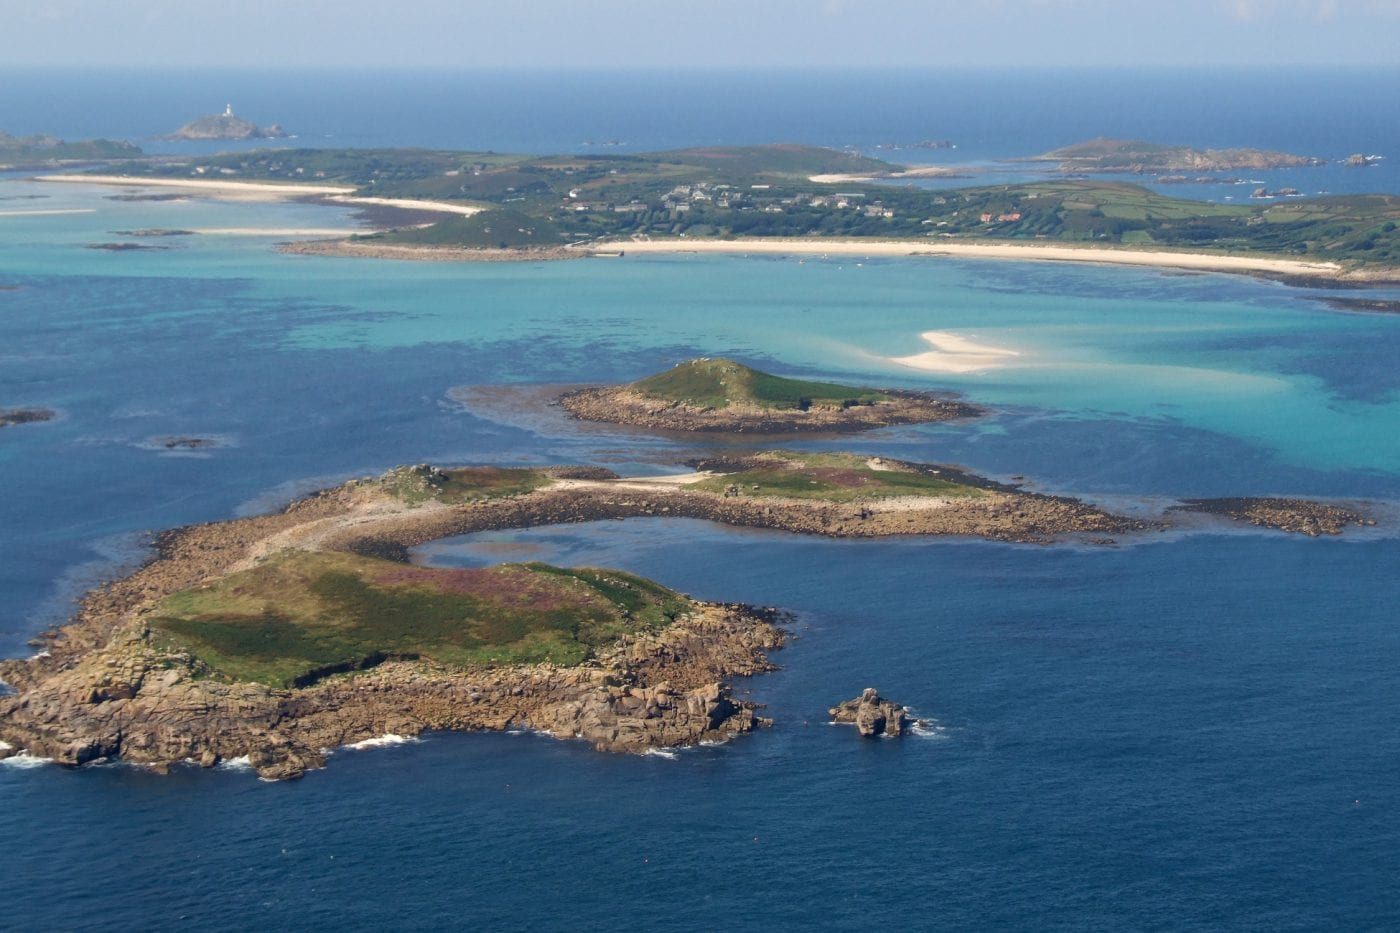 isle of scilly islands from above 2